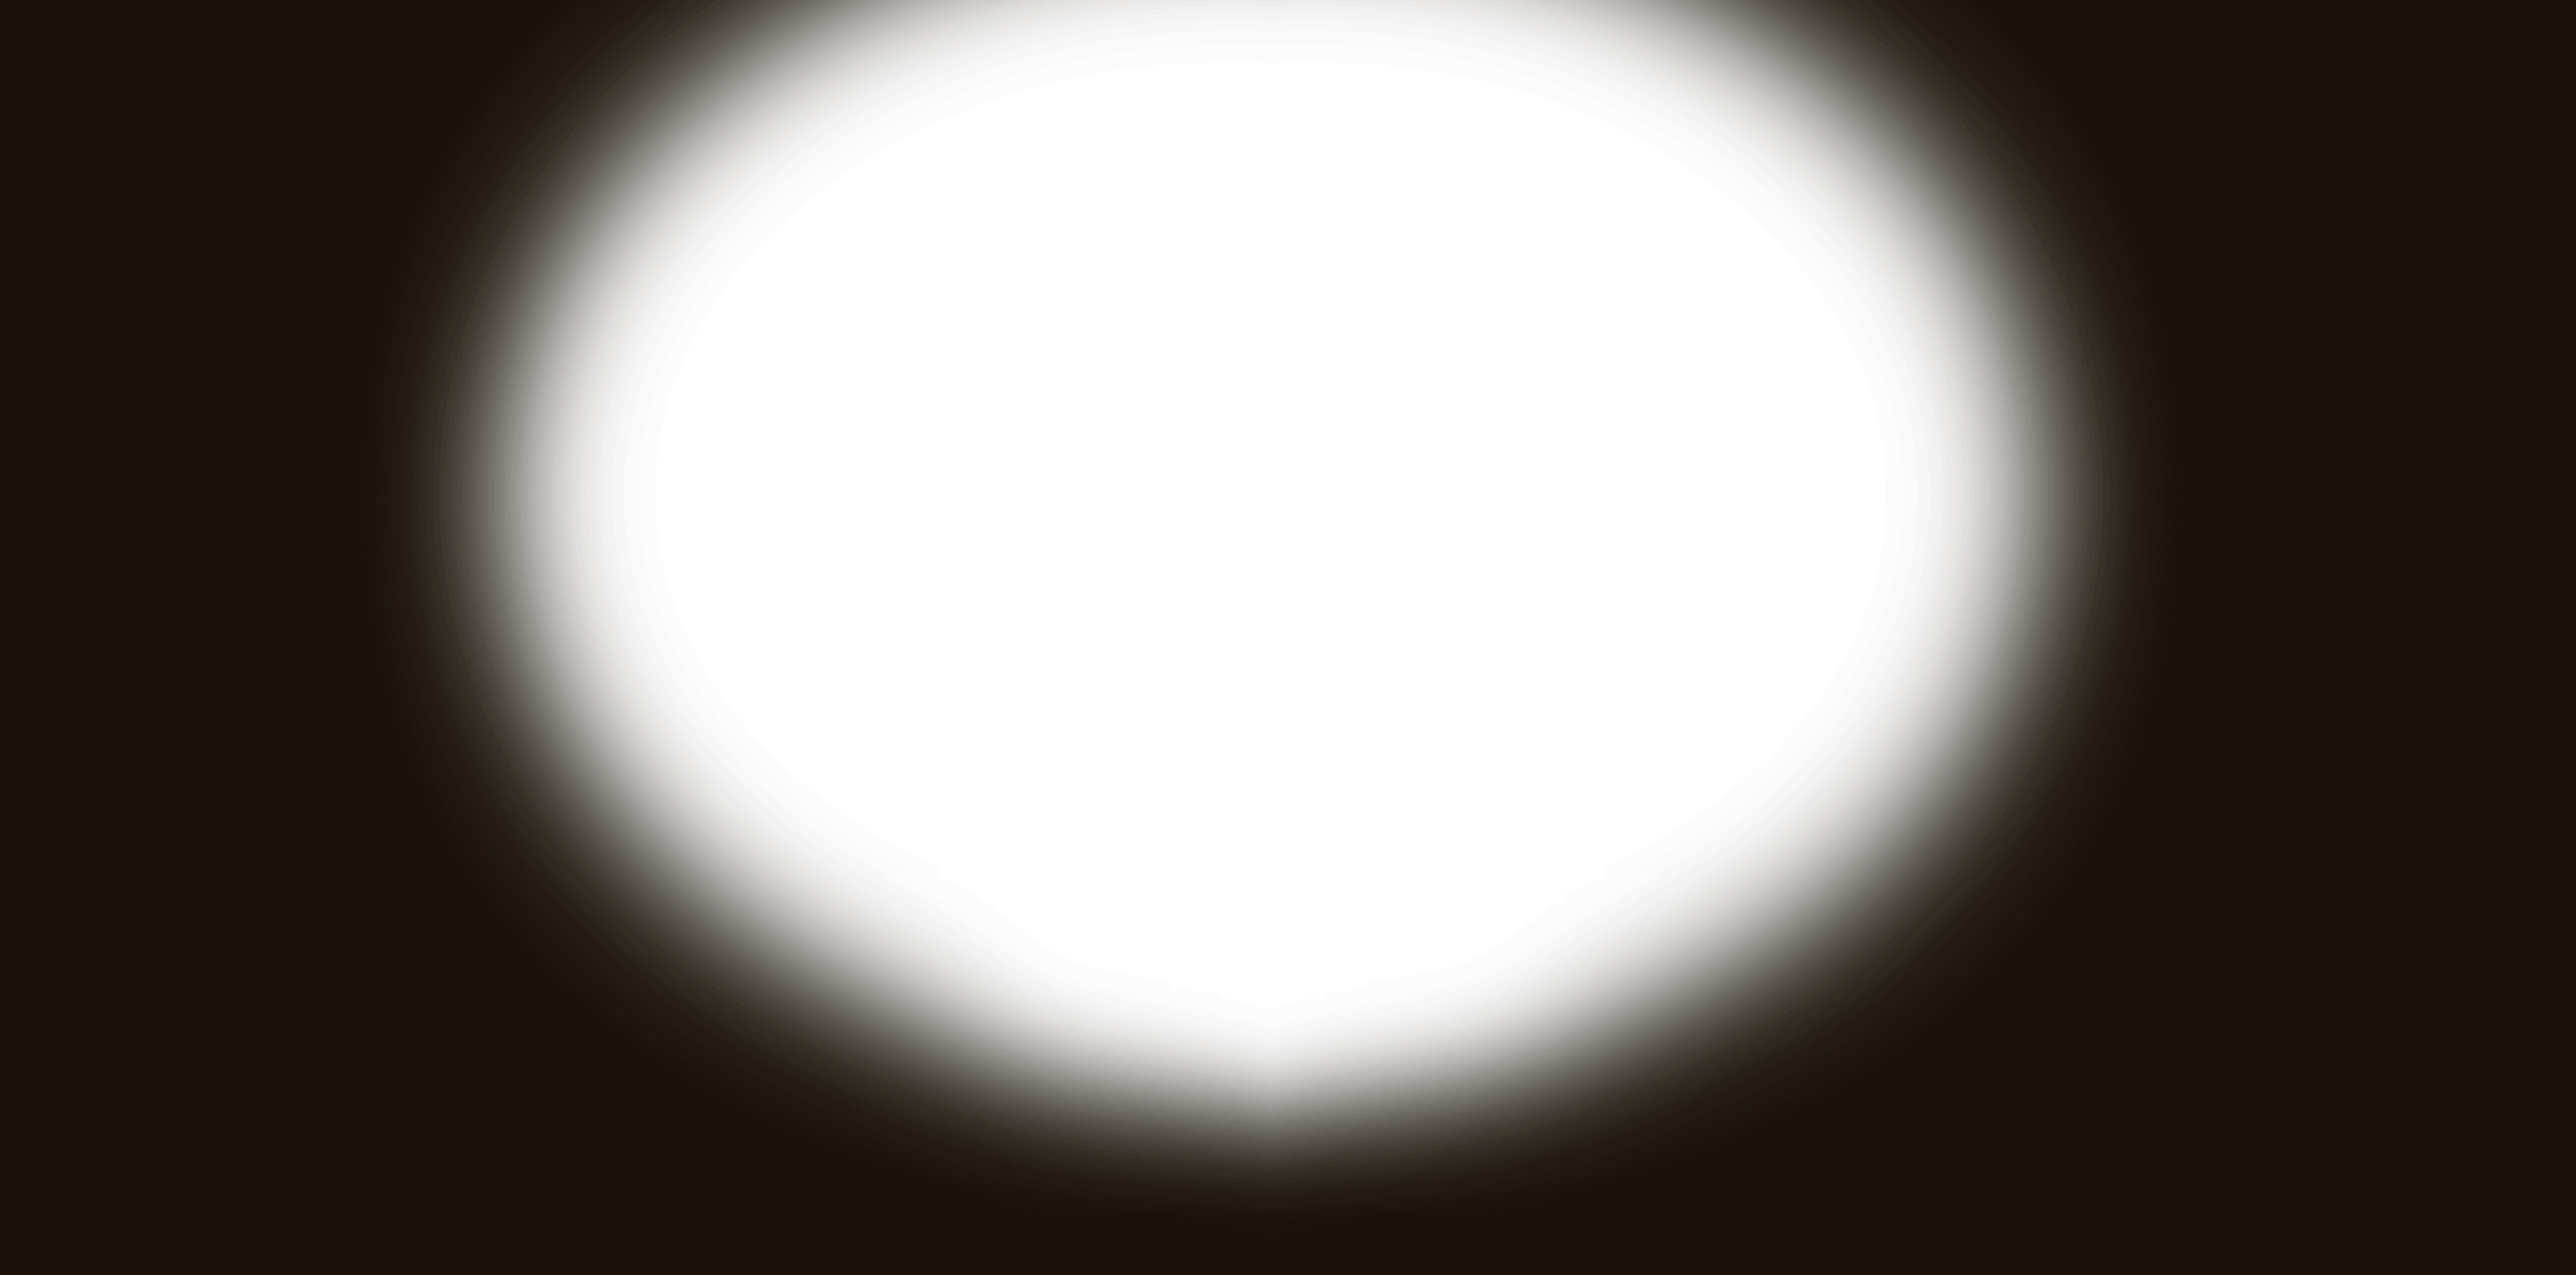 Black circle fade png transparent. Delacroix productions video overlay